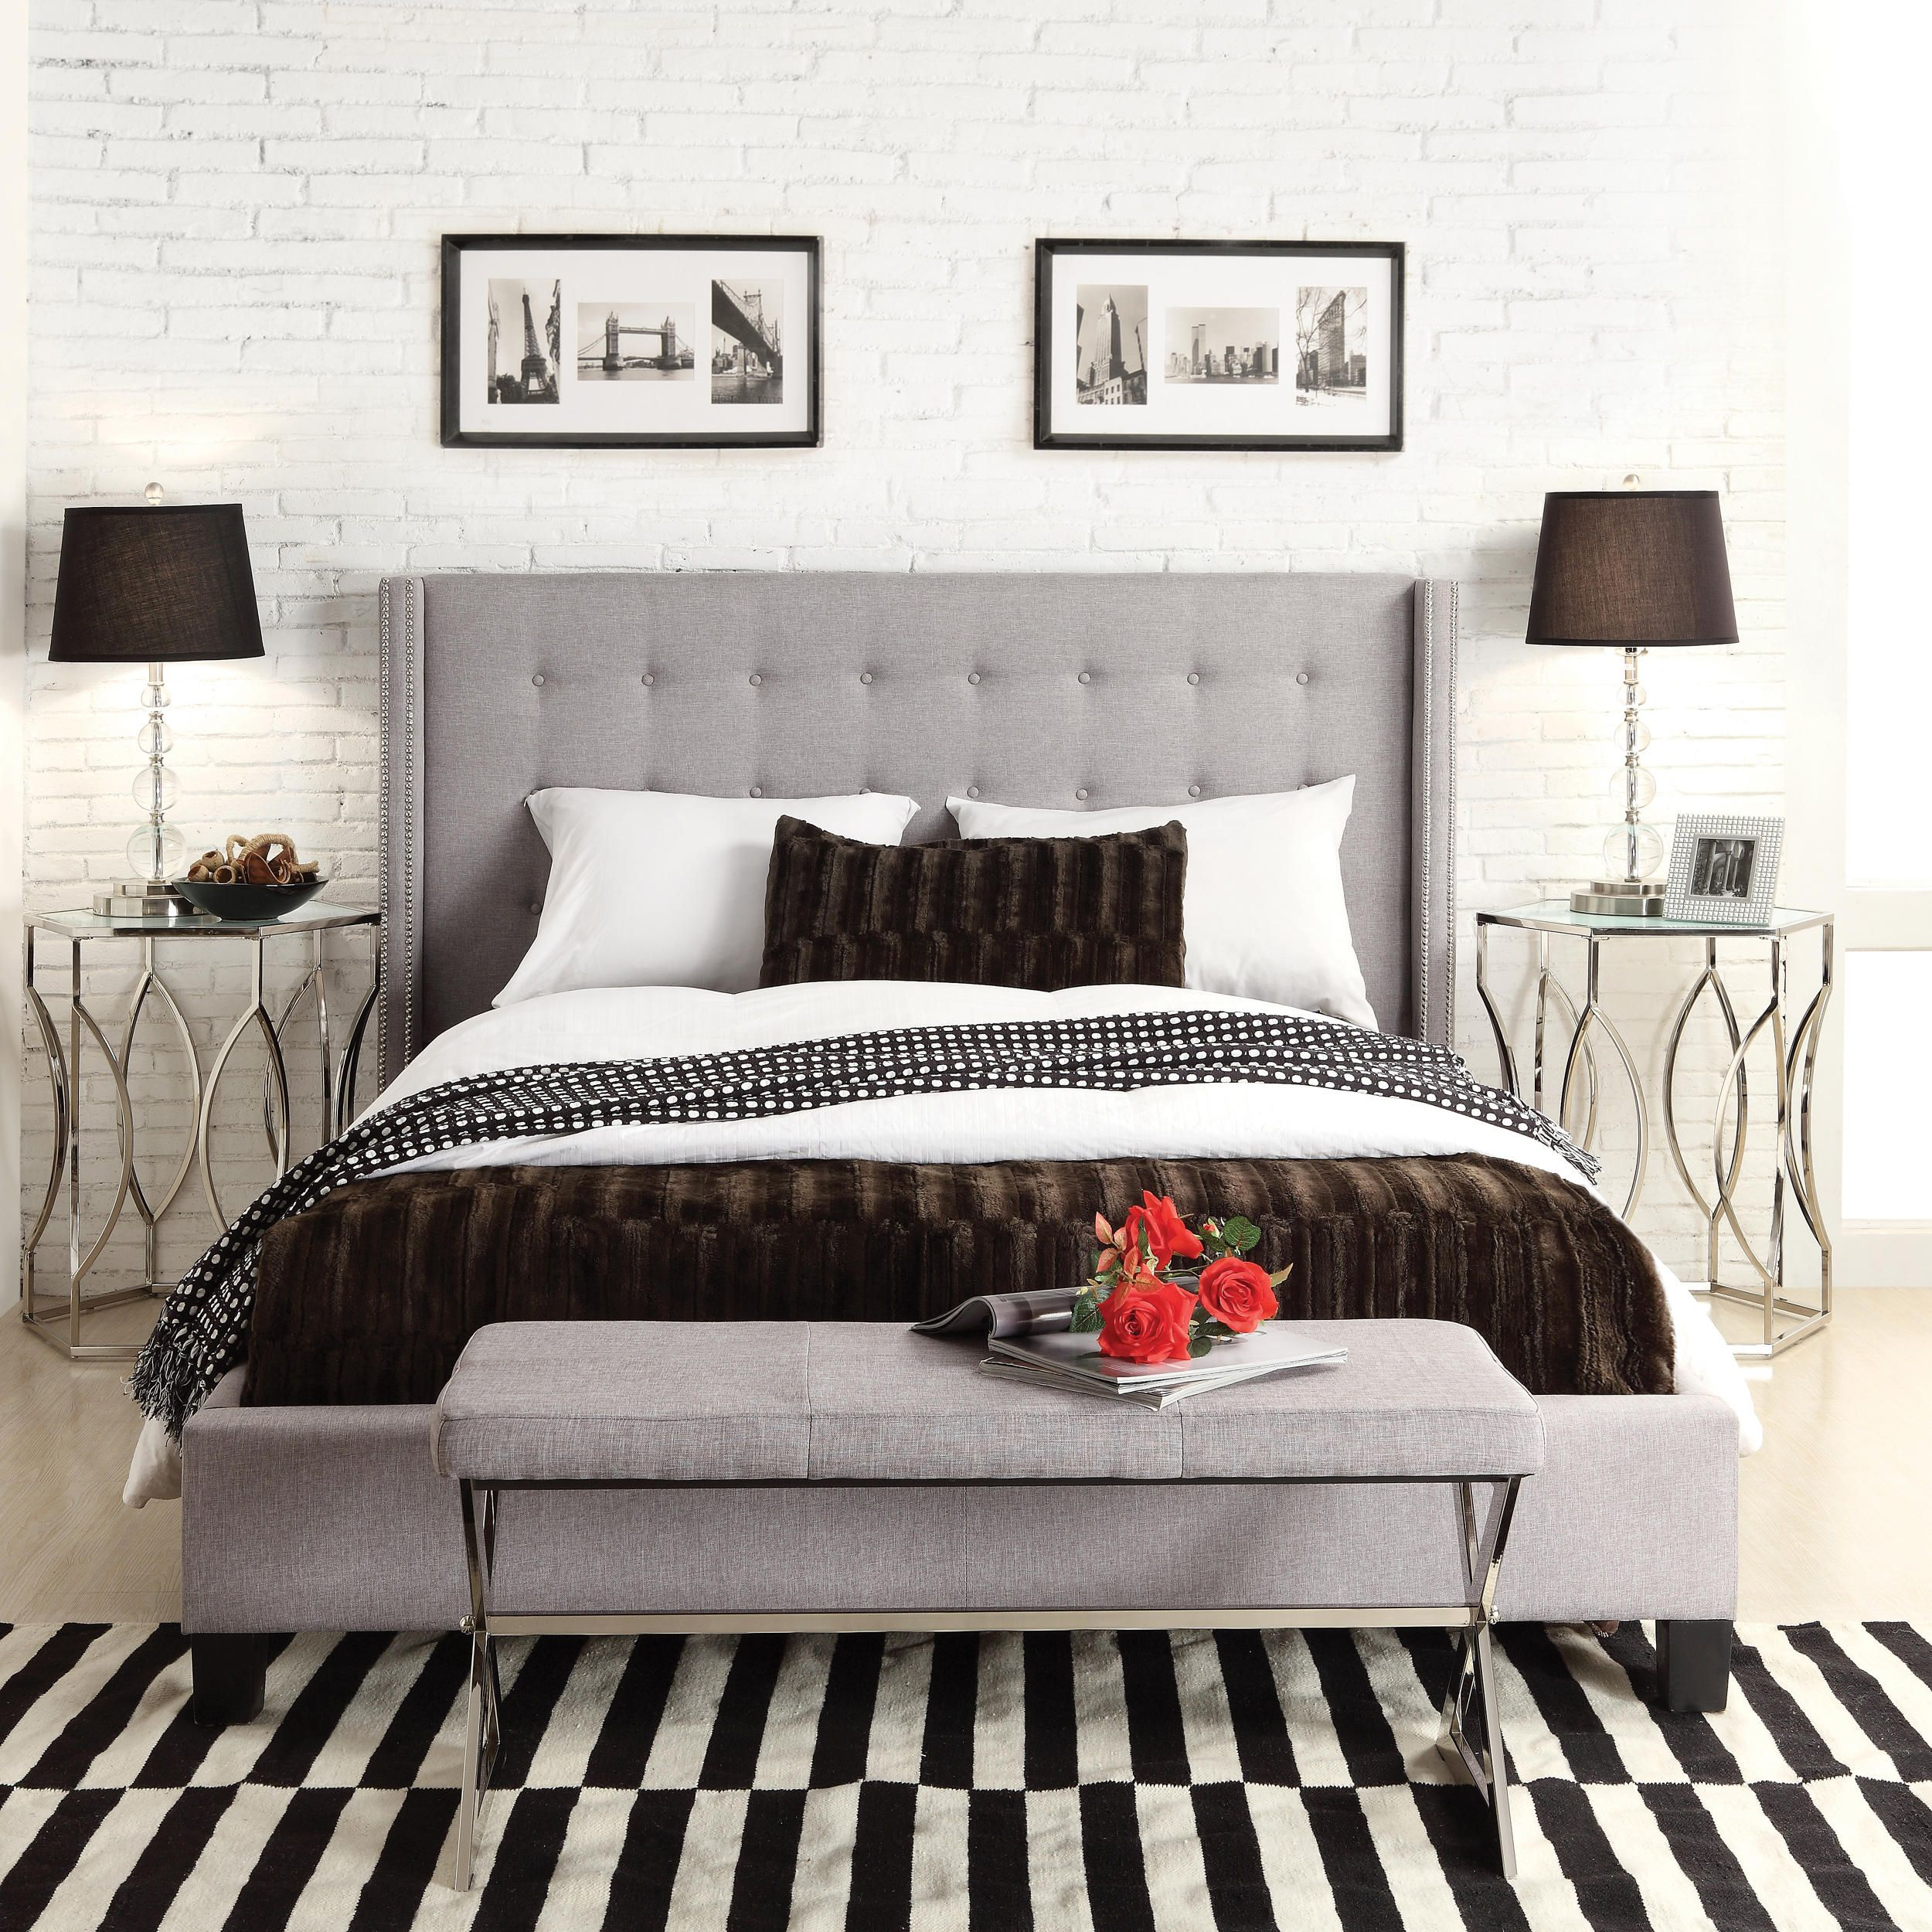 Potpourri Wingback Collection Upholstered Beds Bedrooms Art Van Furniture The Mid Gray Upholstered